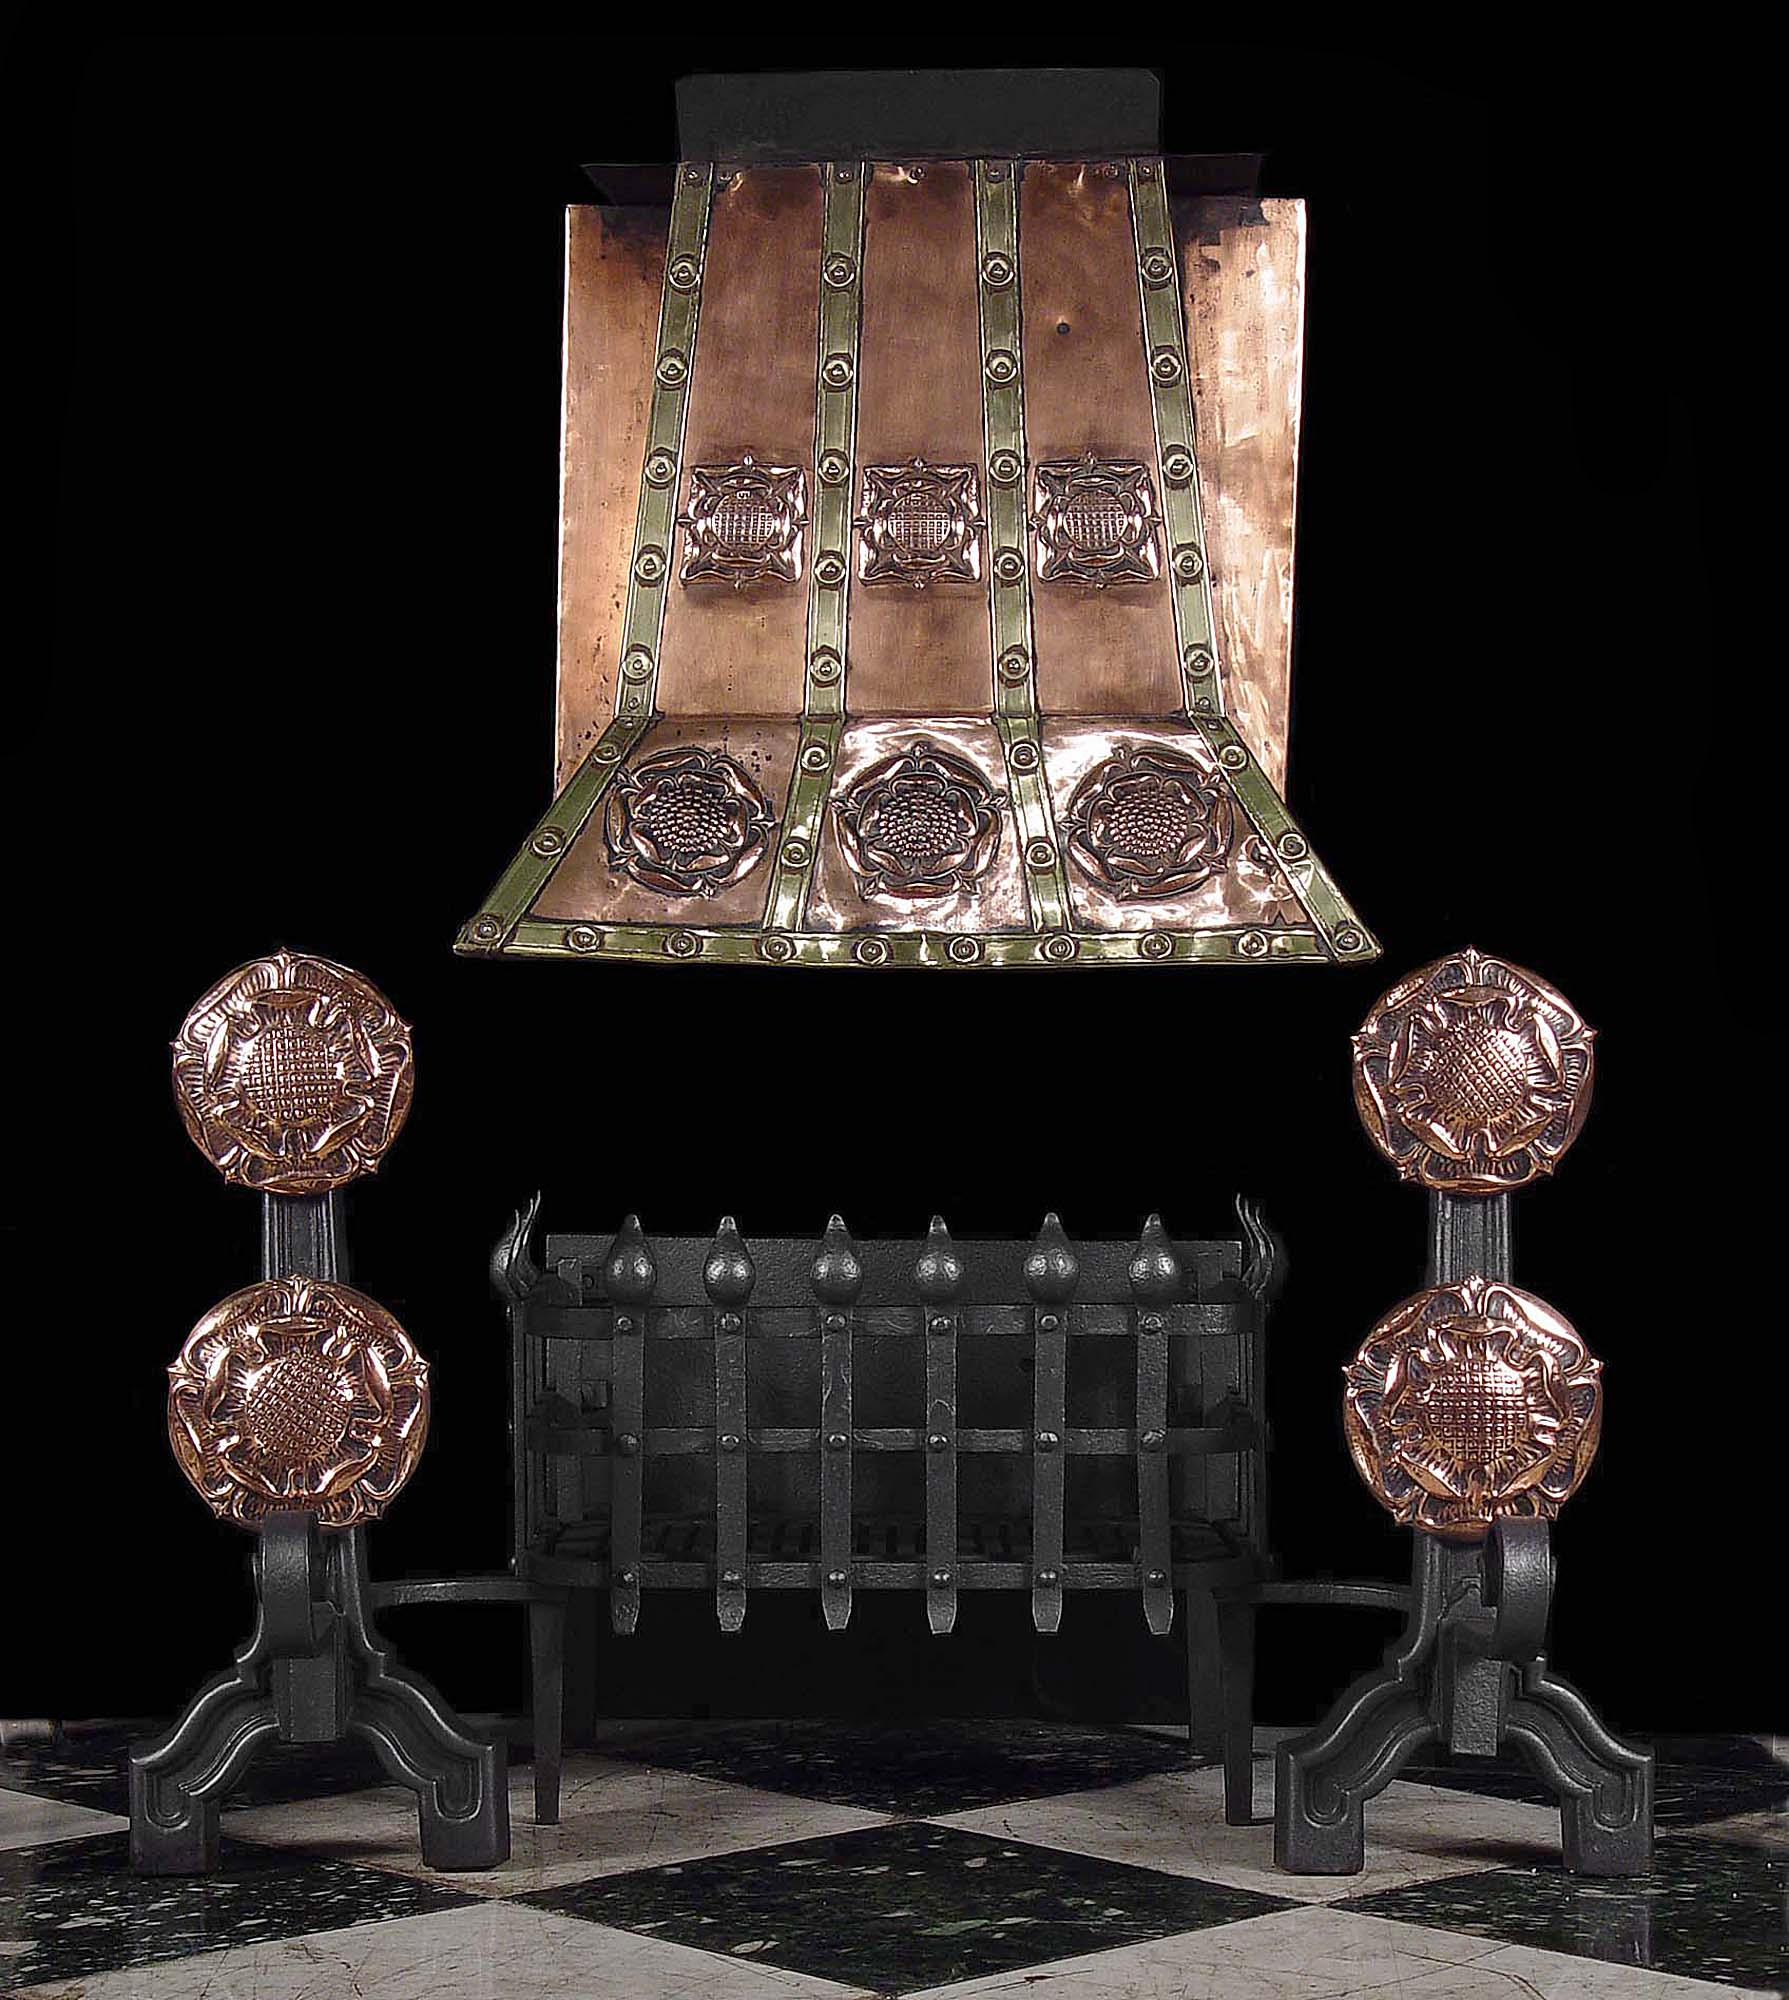 A Tudor Revival Iron and Copper Antique Fire Grate, with intergal Hood & Andirons